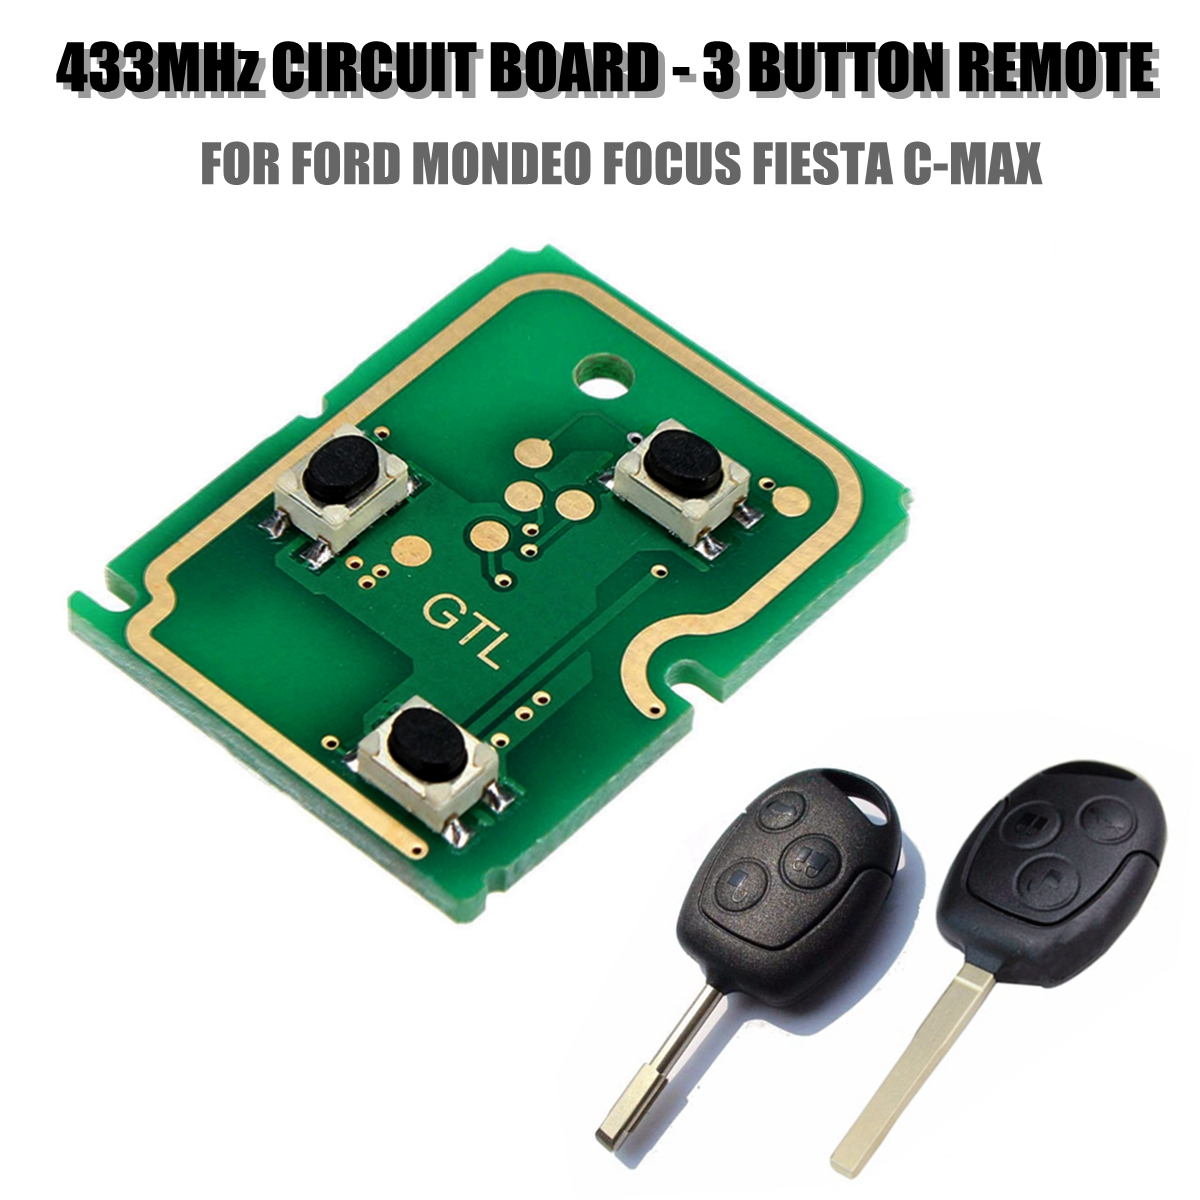 FORD 3 BUTTON CAR KEY remote fob case cover complete circuit board